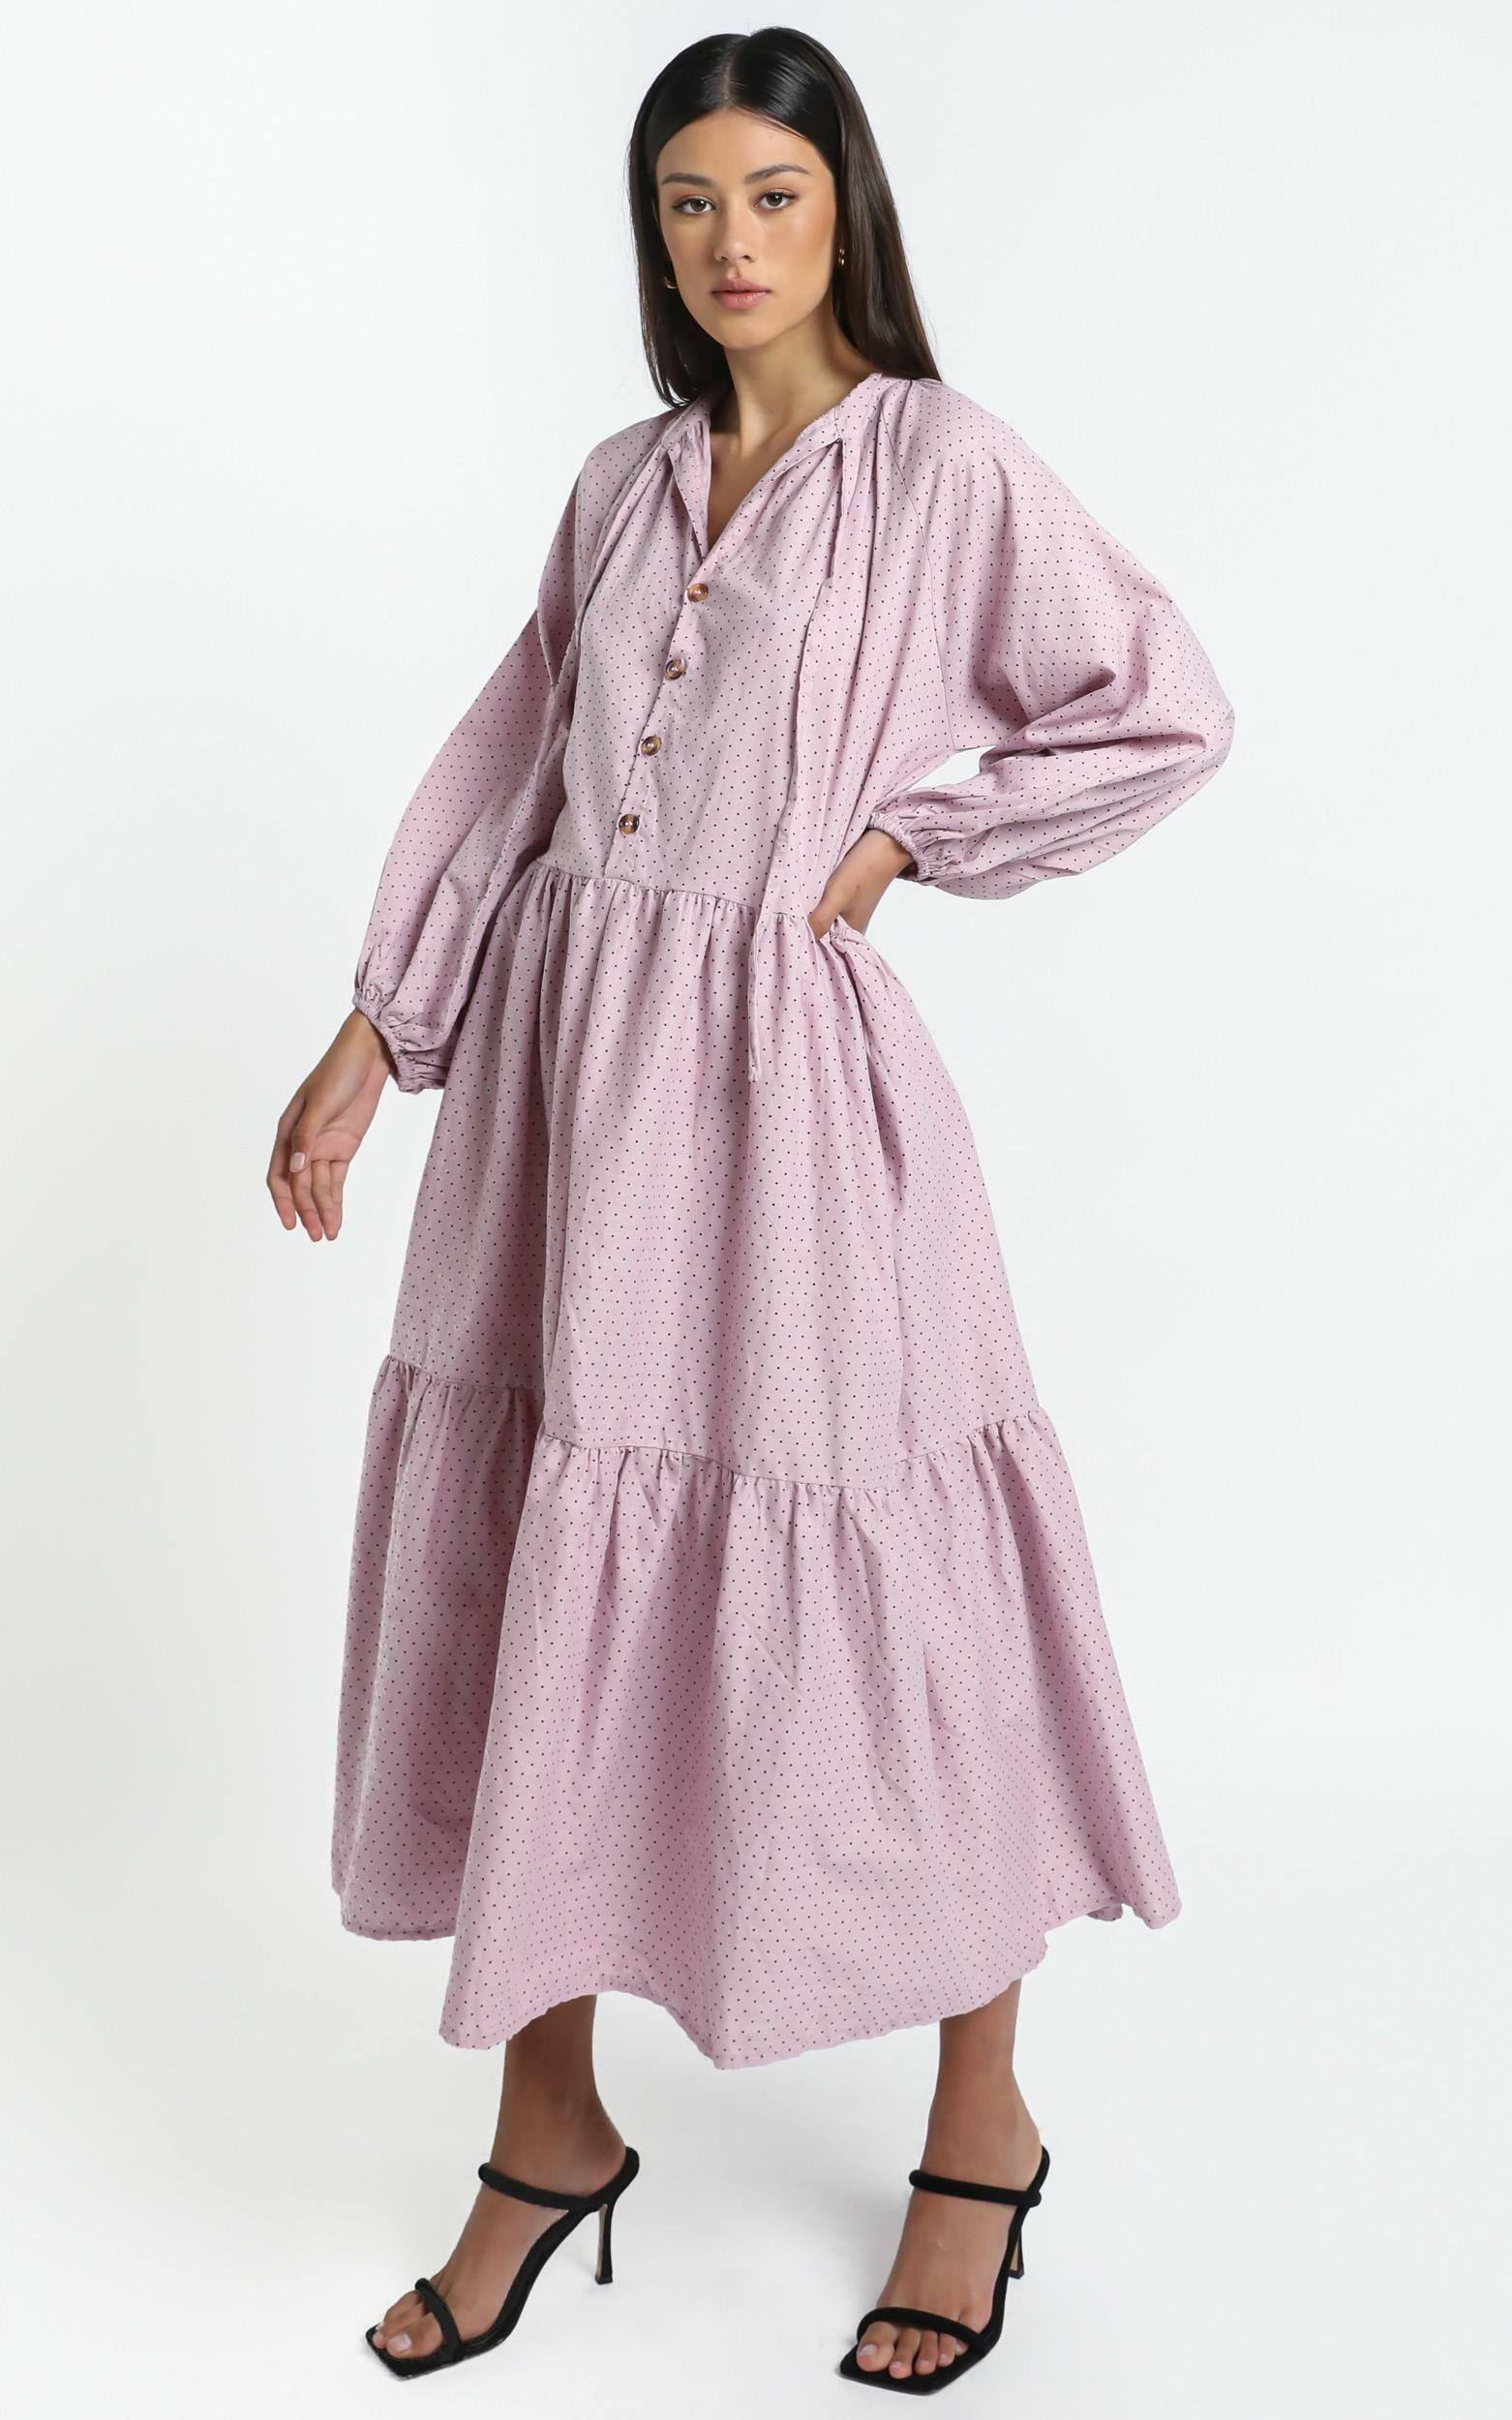 Lullaby Club - Avalon Maxi Dress in Mauve Polka Dots - L/XL, Purple, hi-res image number null